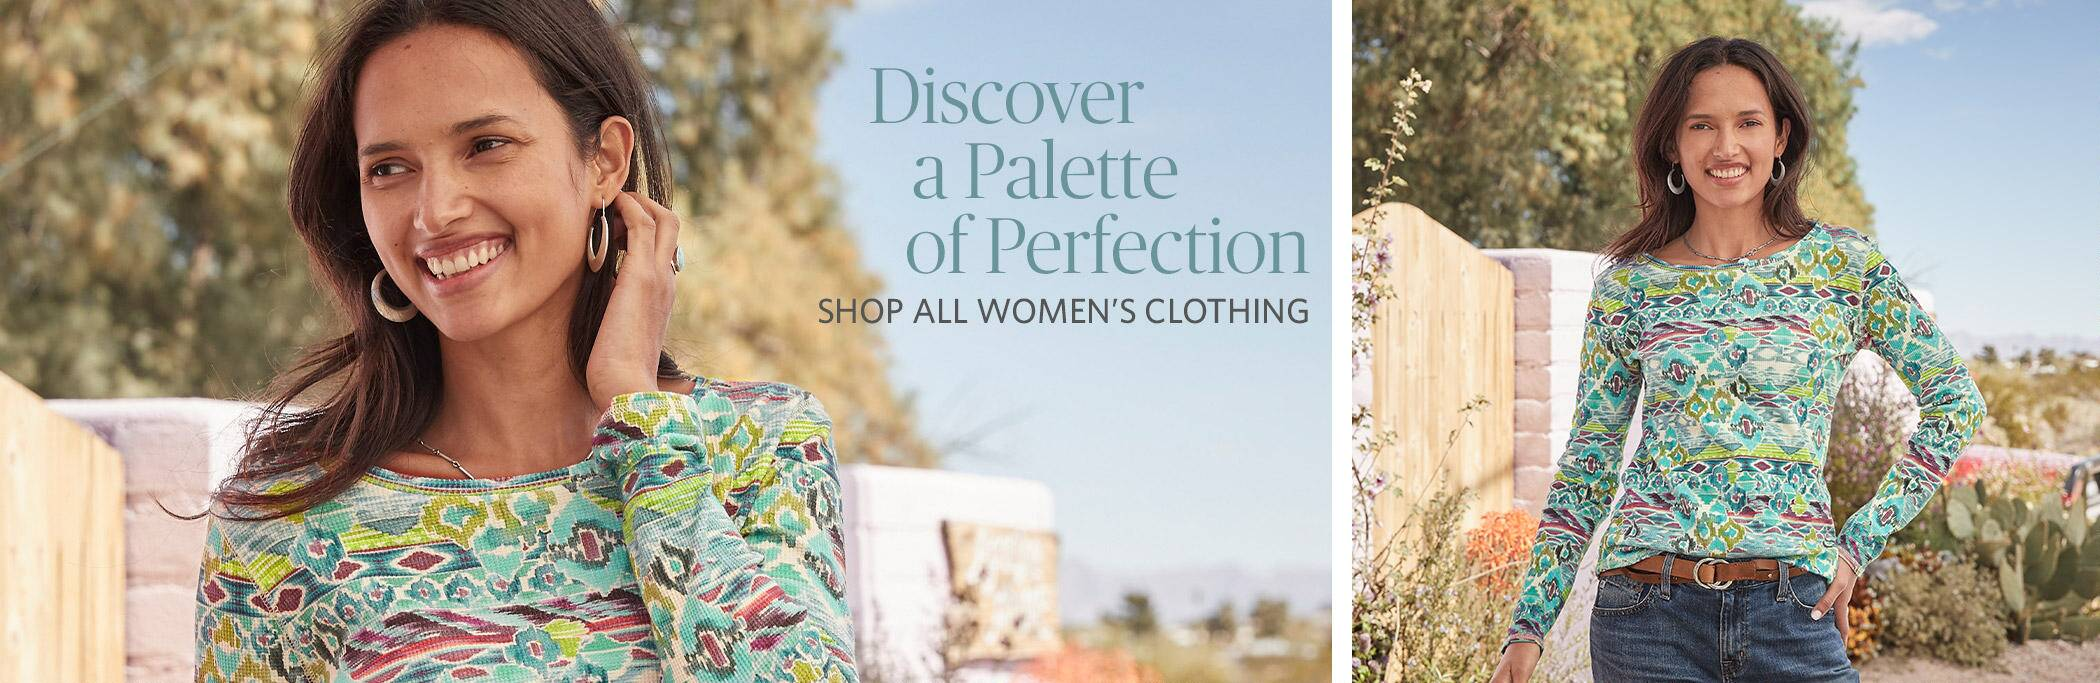 Discover a Palette of Perfection